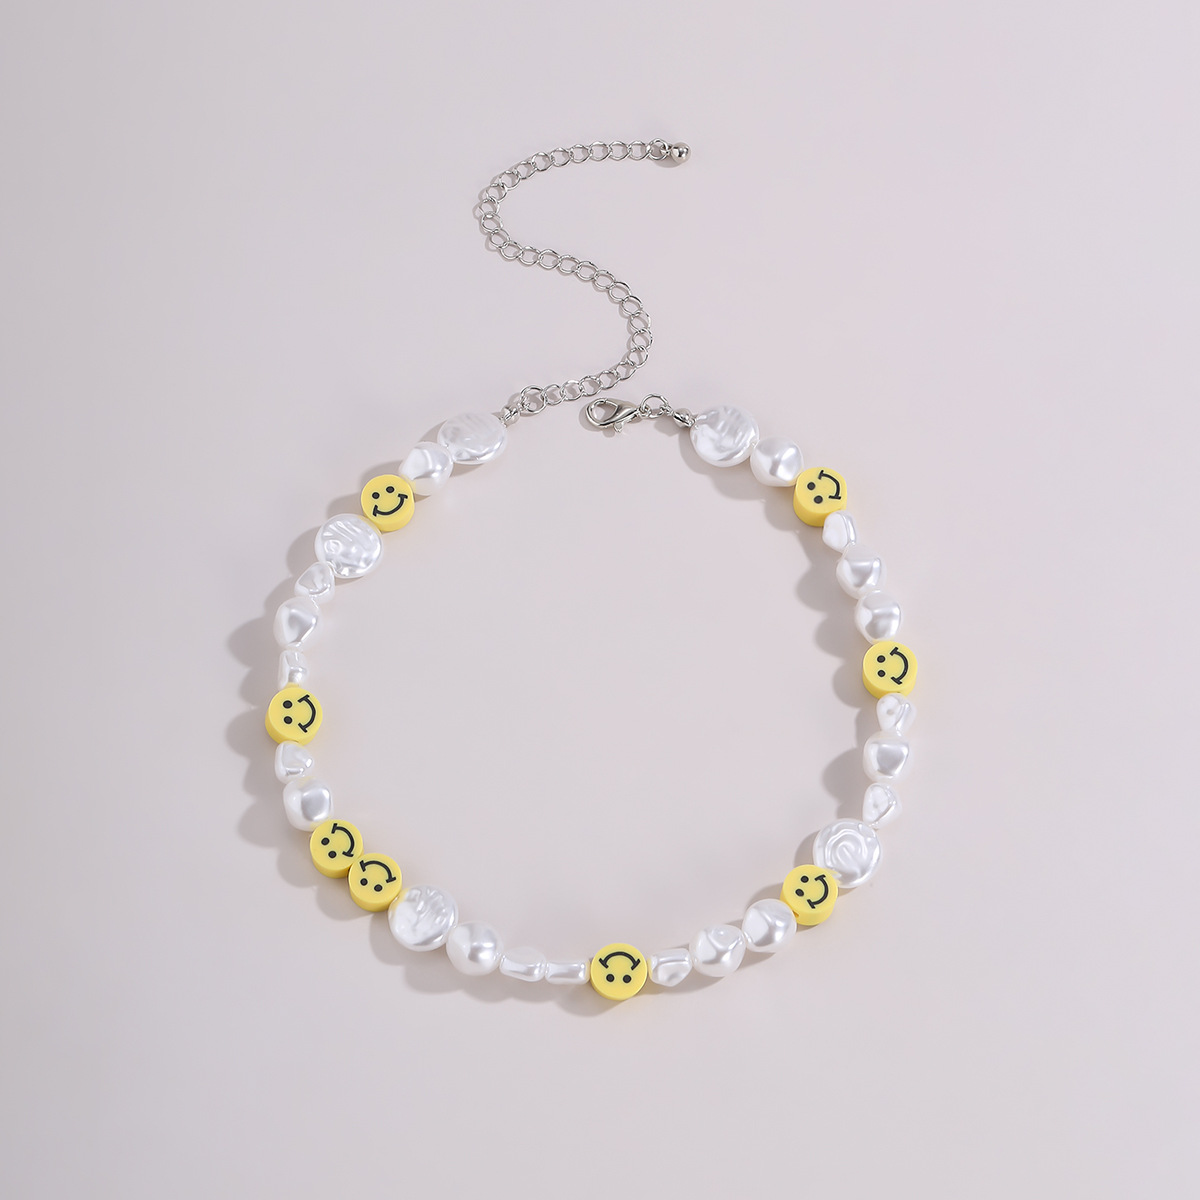 retro baroque pearl clavicle simple trendy smiley face necklace for women NHXR260663